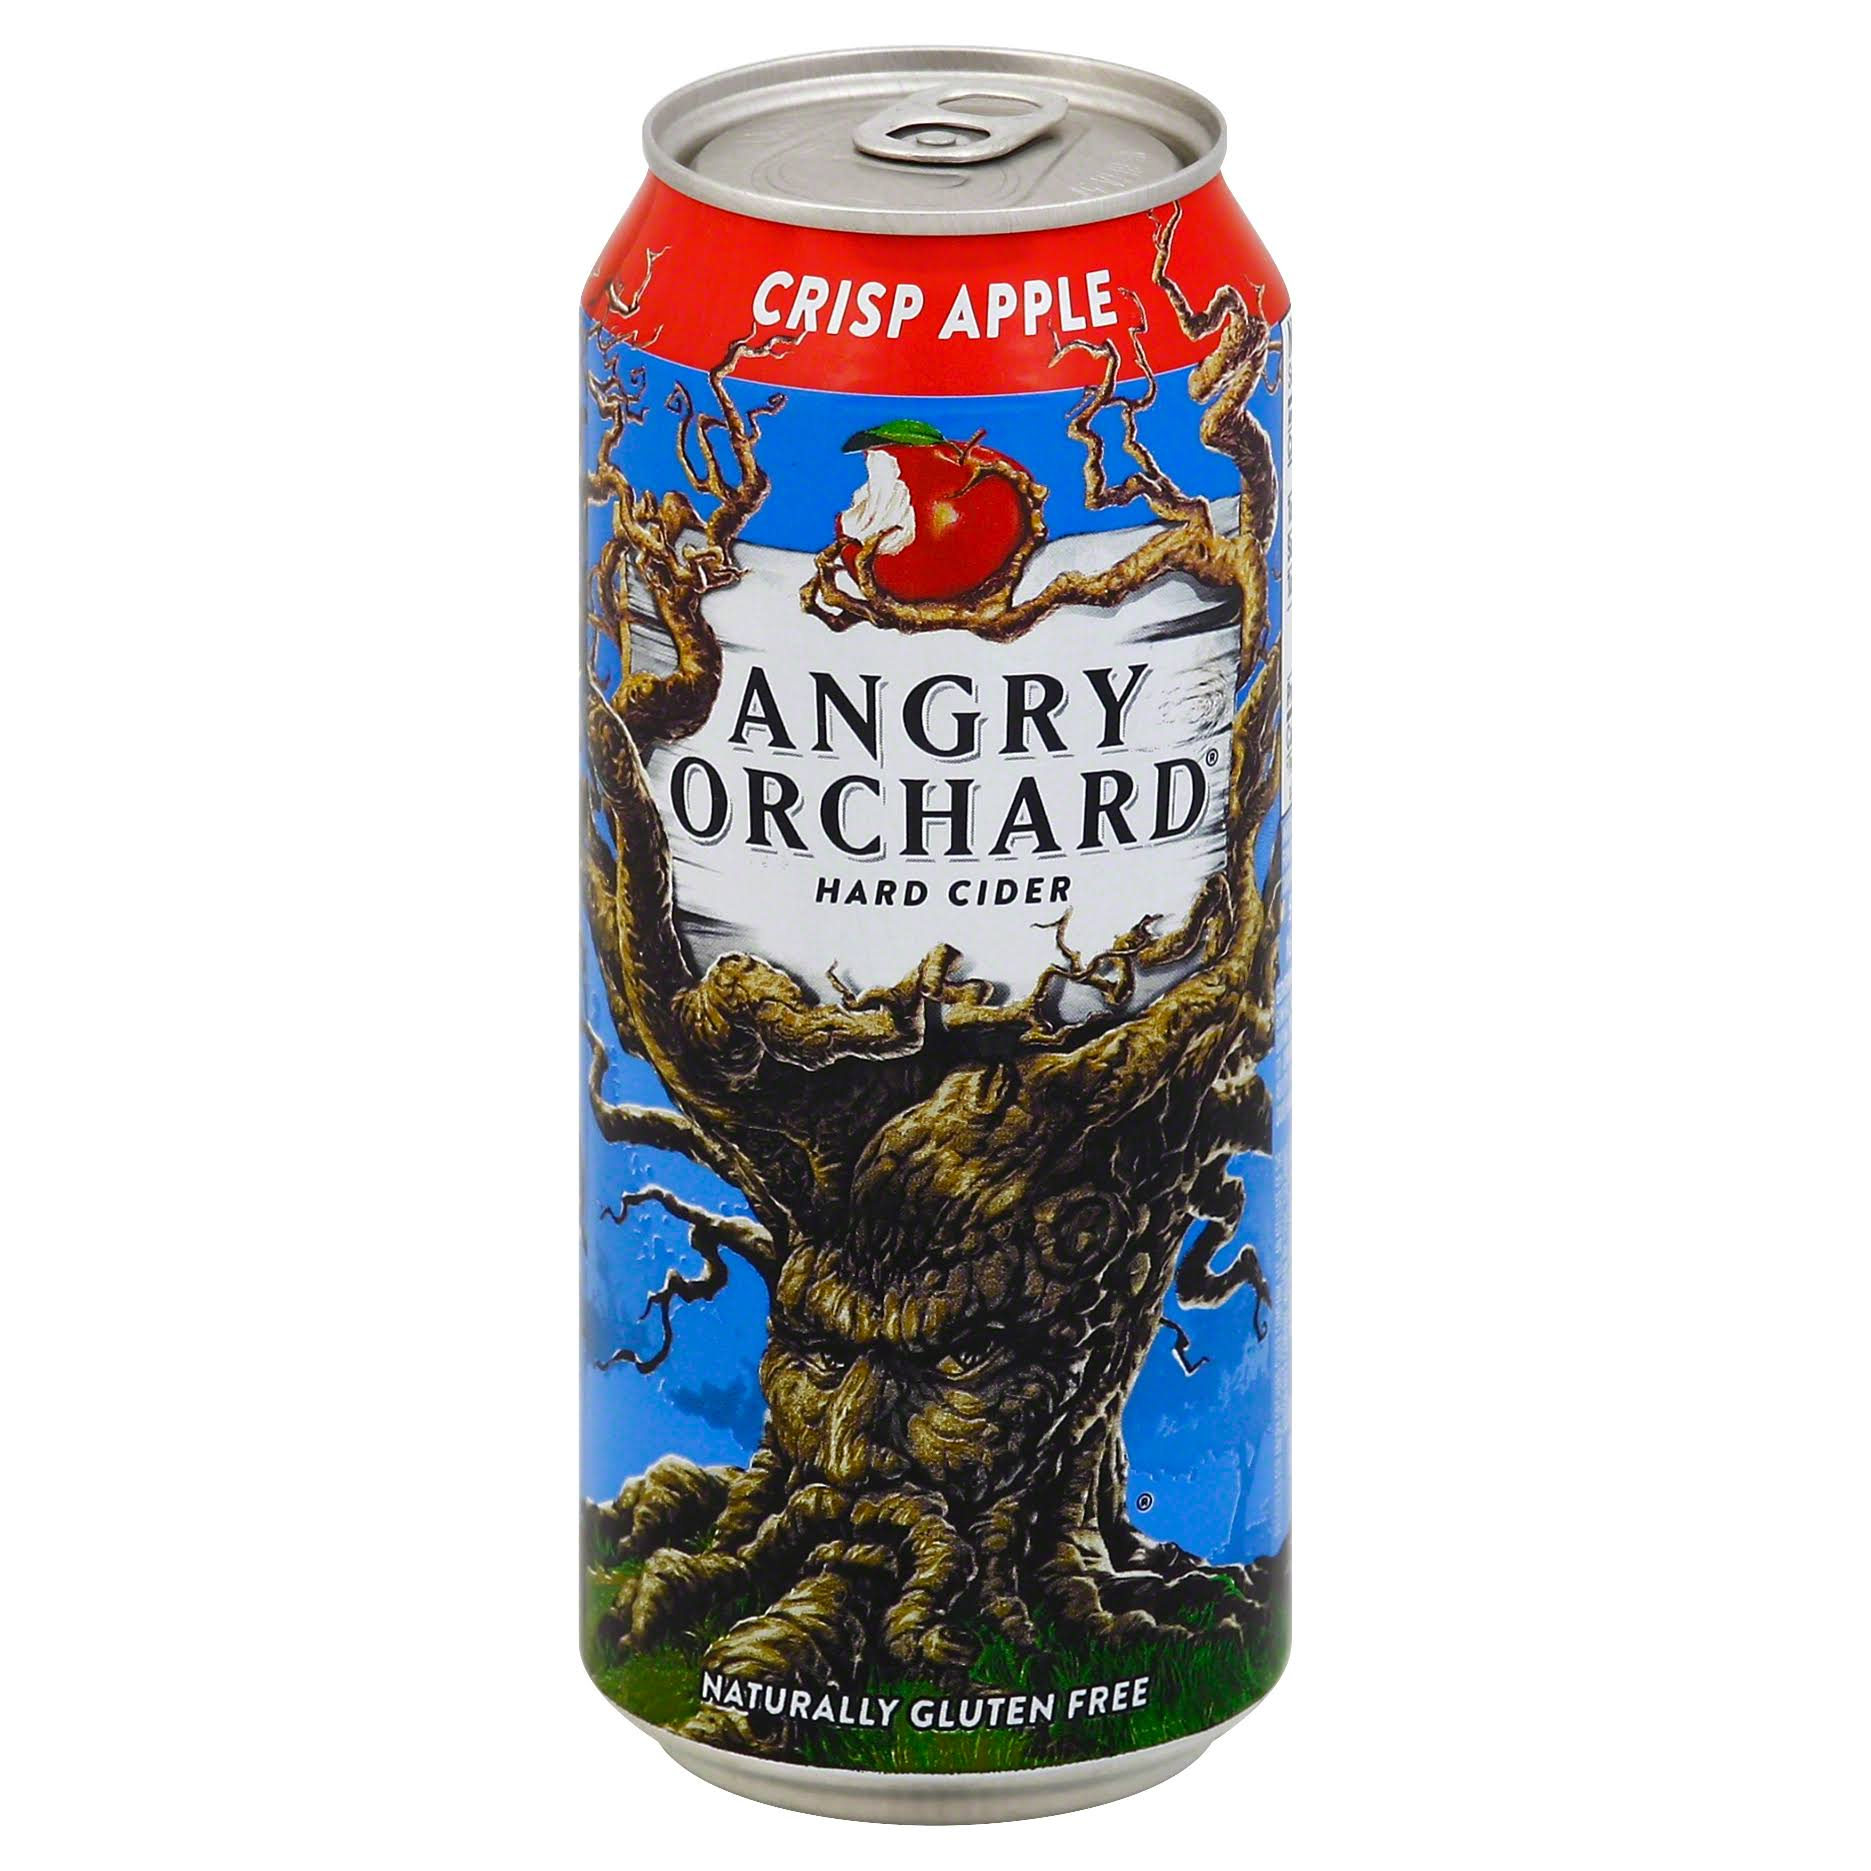 Angry Orchard Crisp Apple Hard Cider - 16 fl oz can